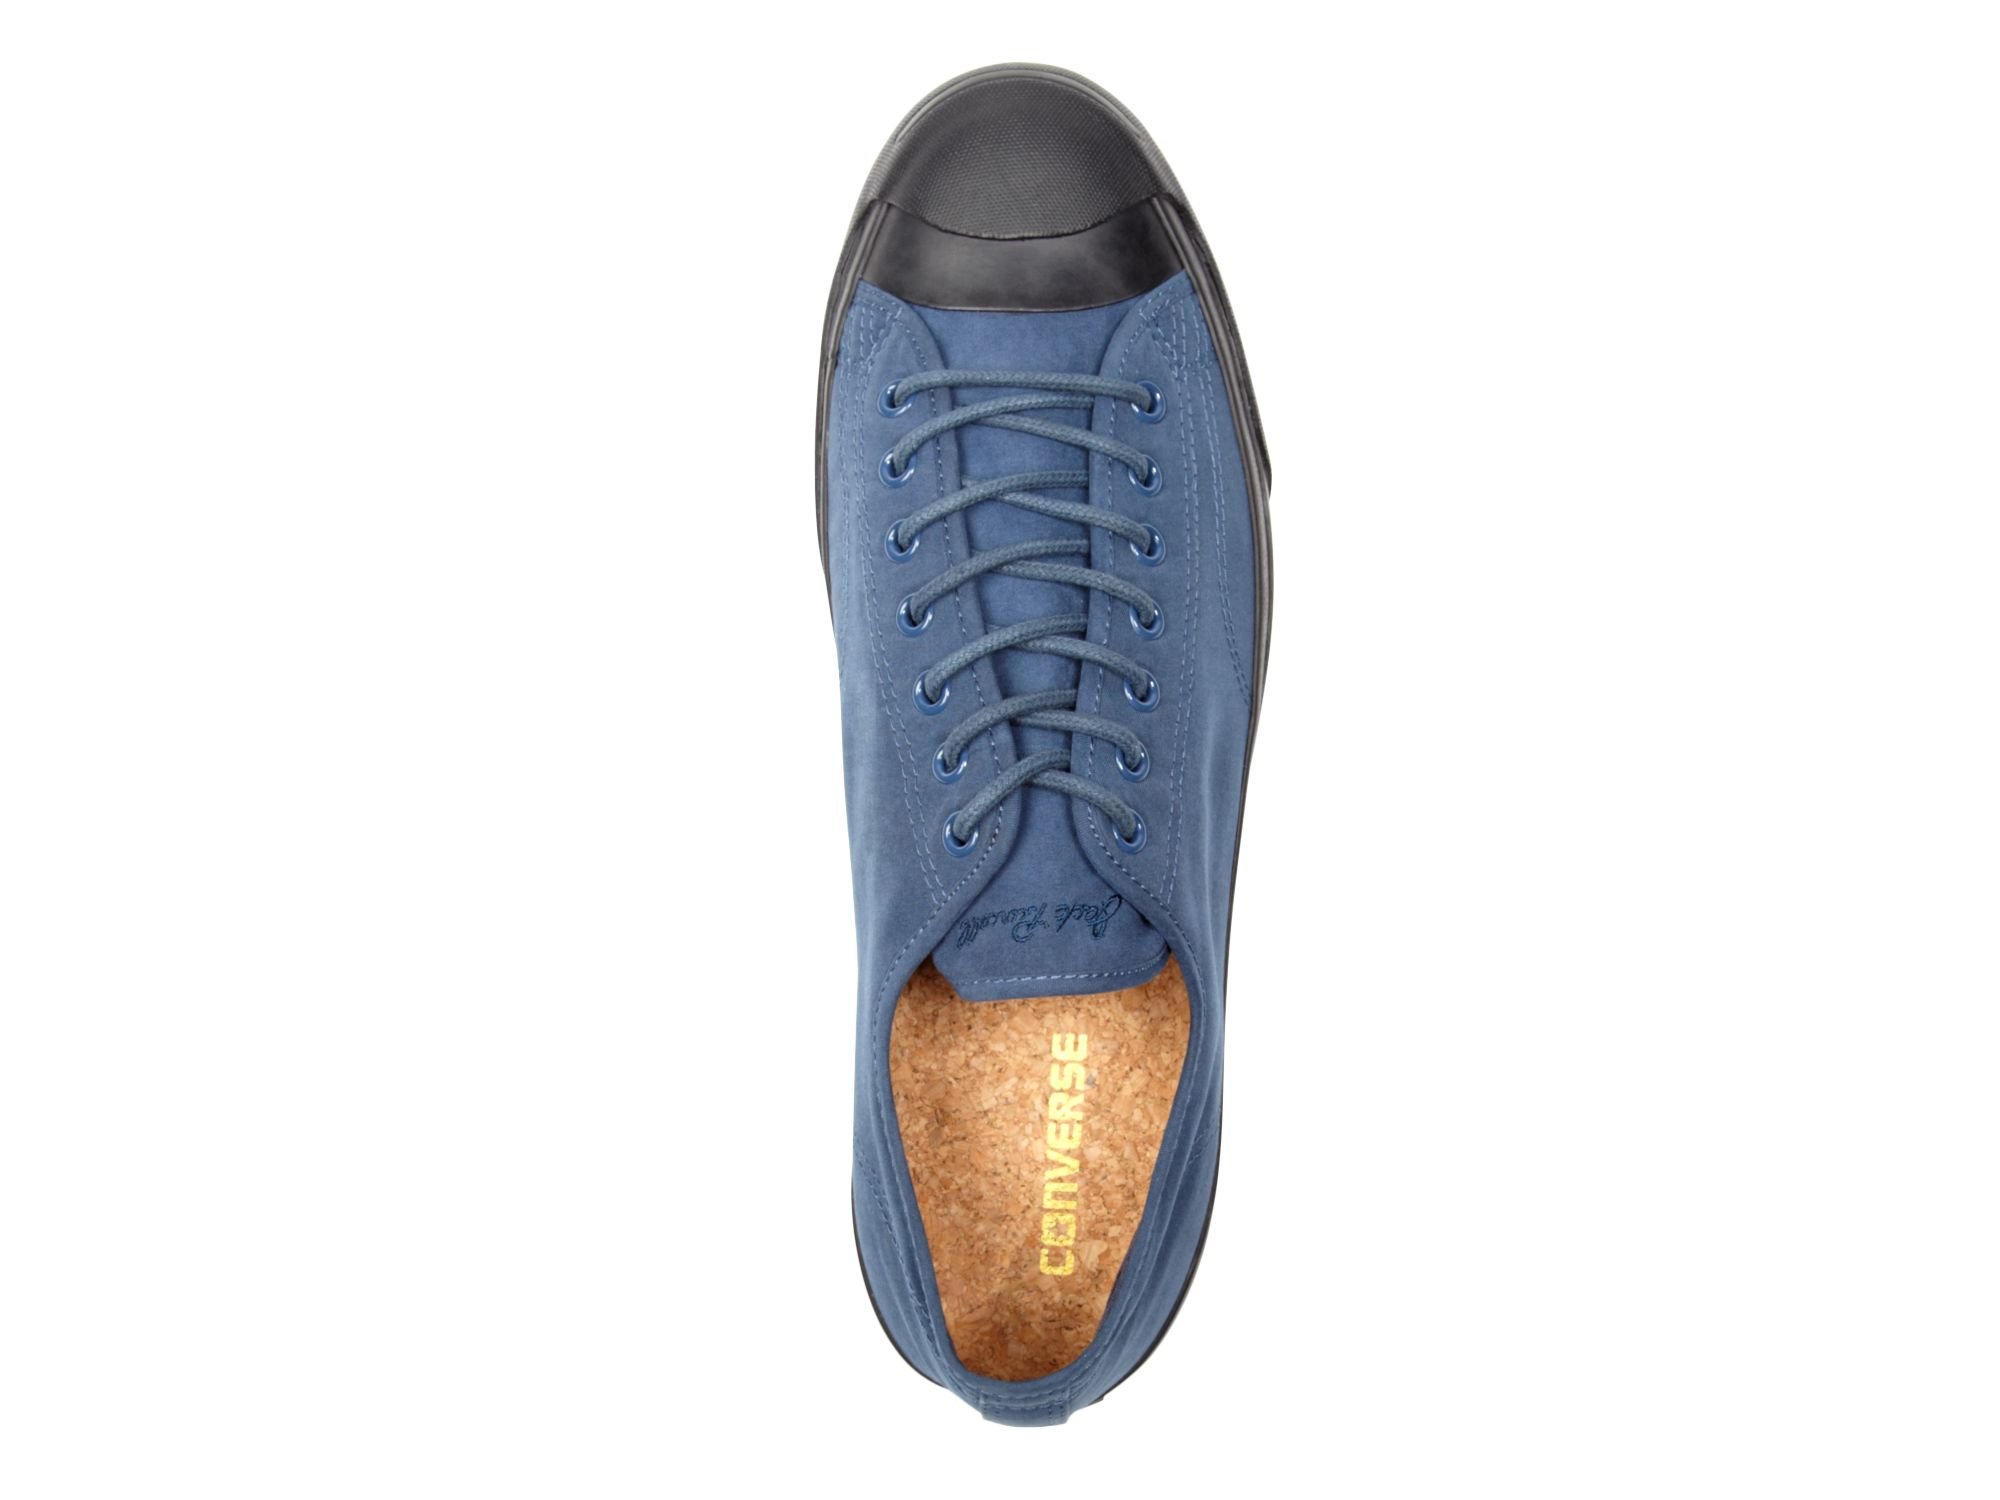 Converse Jp Jack Ox Peached Textile Sneakers in Navy (Blue)